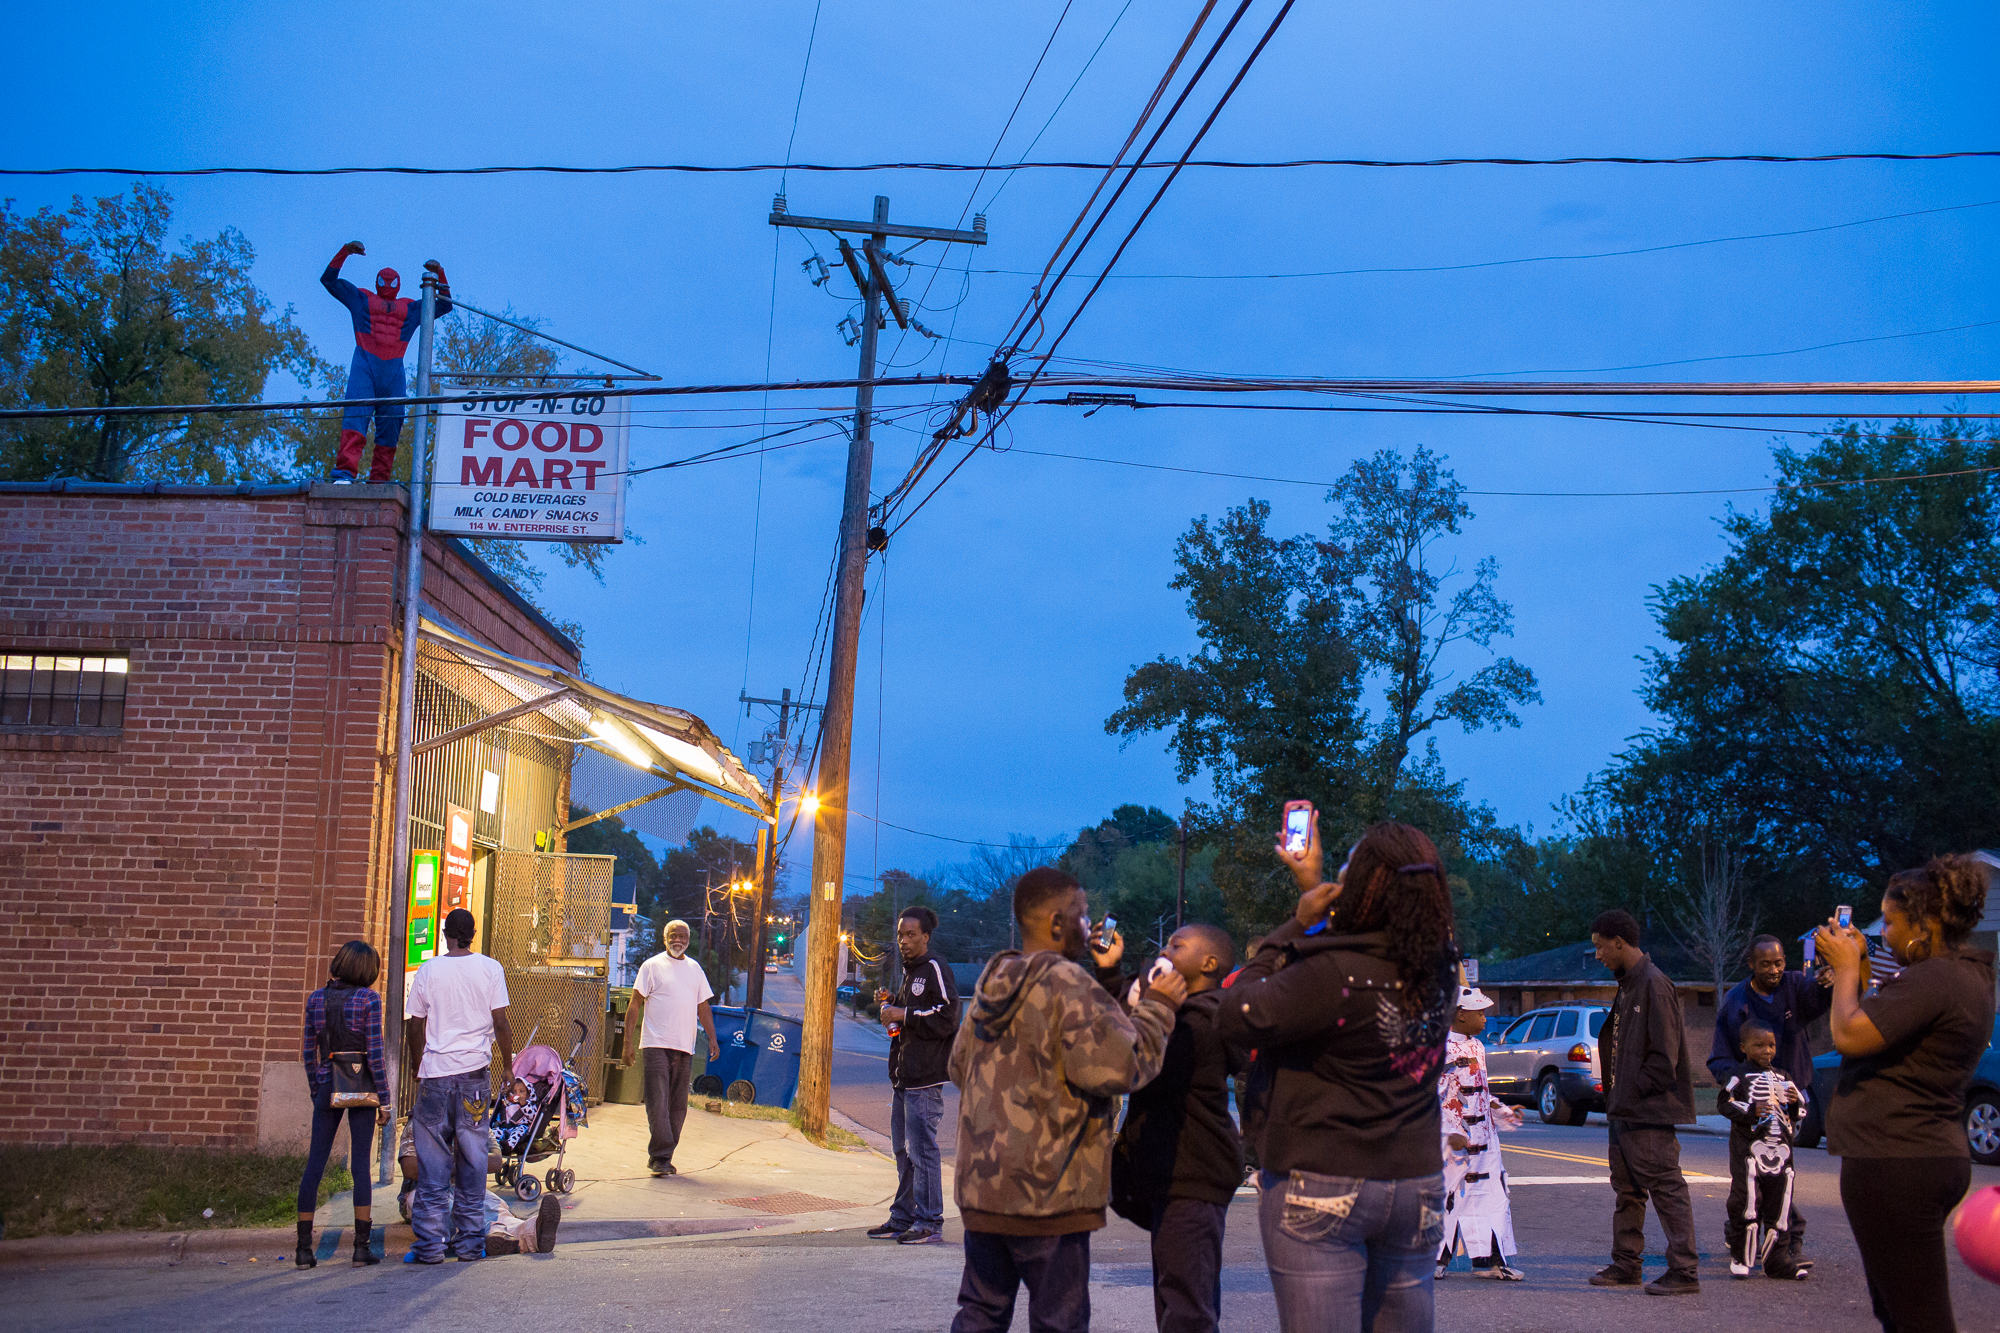 """A man who calls himself """"Lil' Salt"""" flexes in triumph after climbing the corner store dressed as Spider-Man during Halloween festivities in Durham's Southside neighborhood. The Southside has endured despite violence in the past decade, but is changing rapidly under the City of Durham's redevelopment plans."""